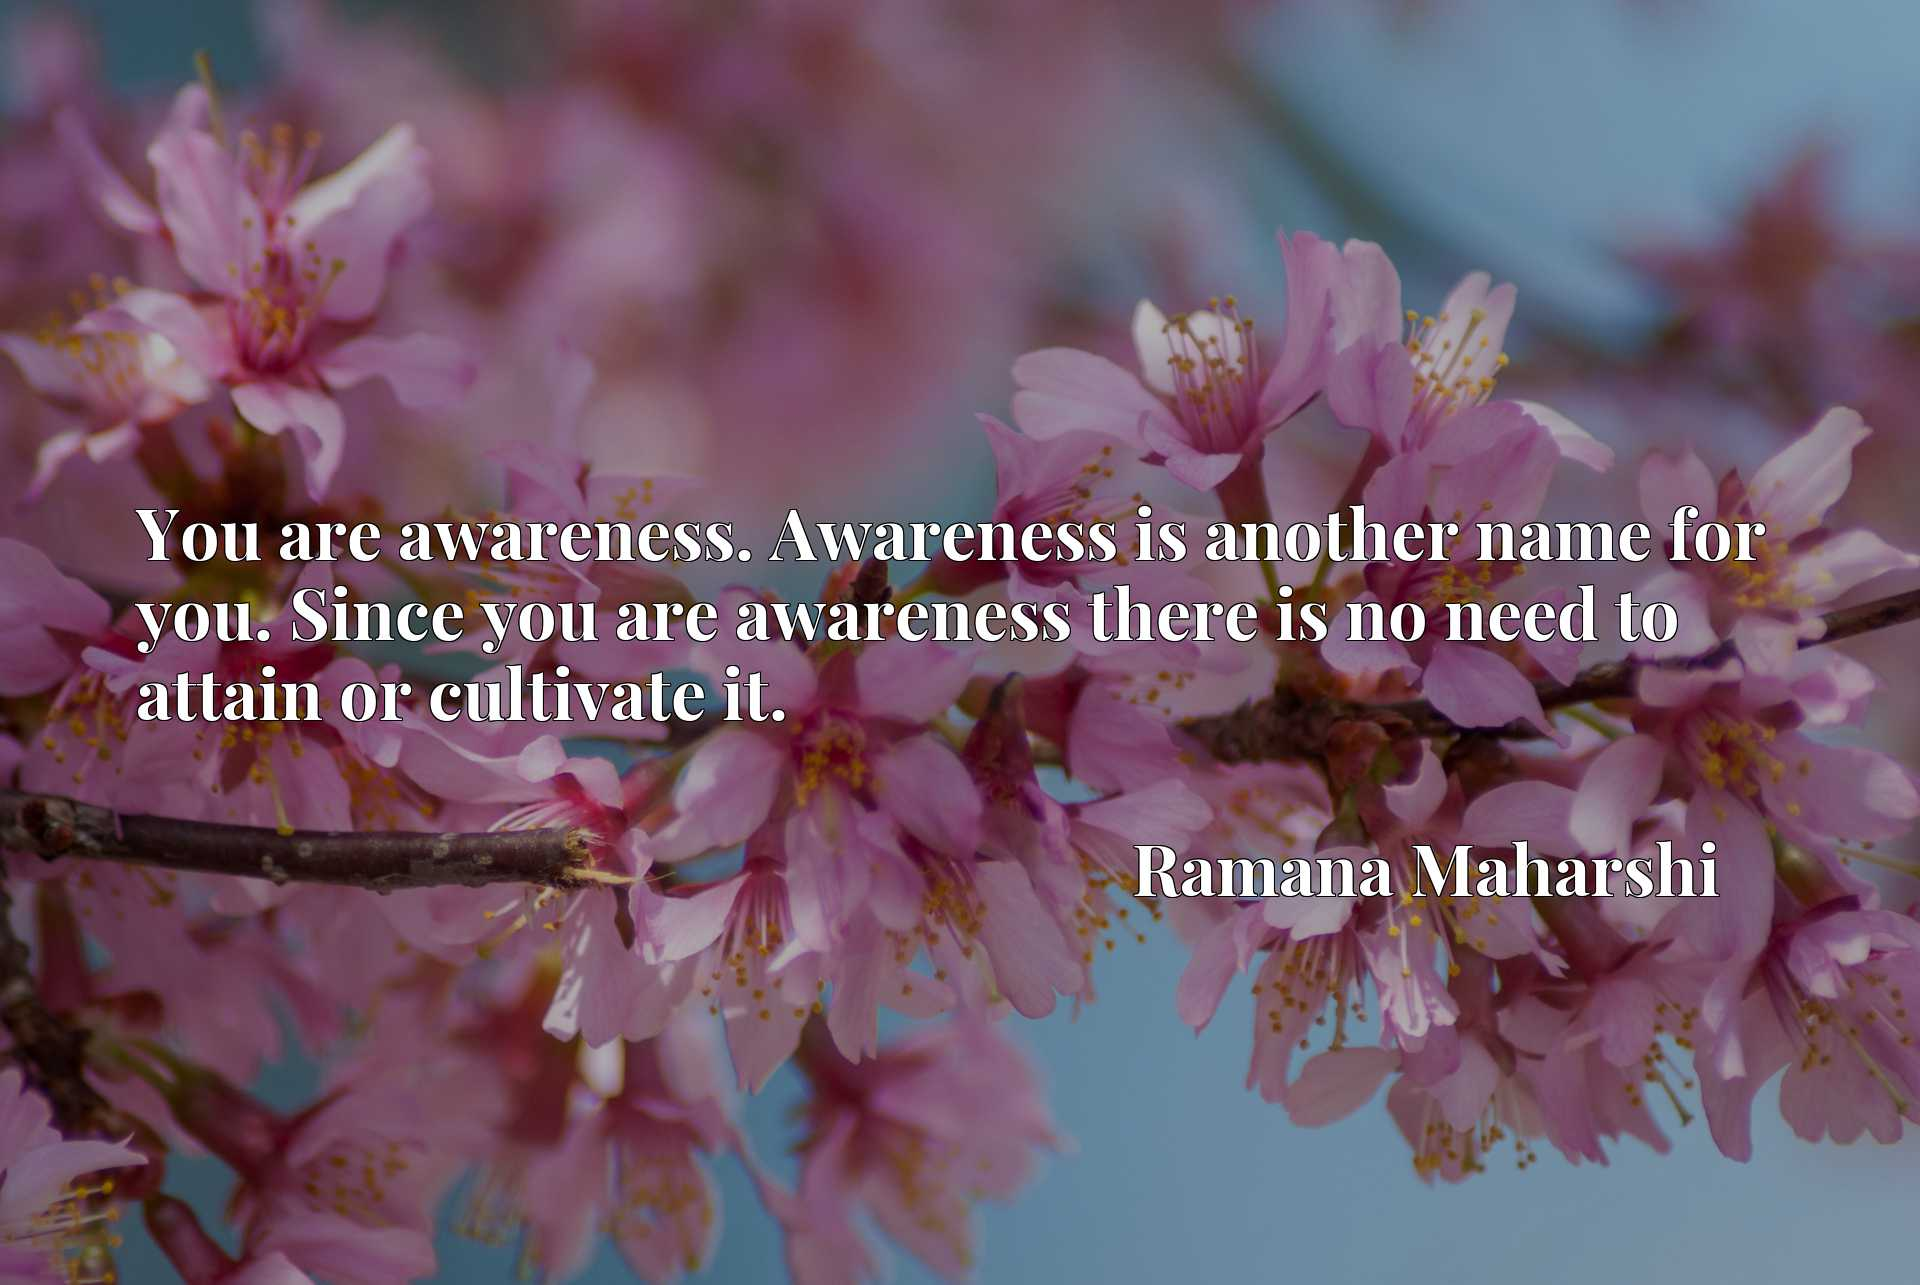 You are awareness. Awareness is another name for you. Since you are awareness there is no need to attain or cultivate it.